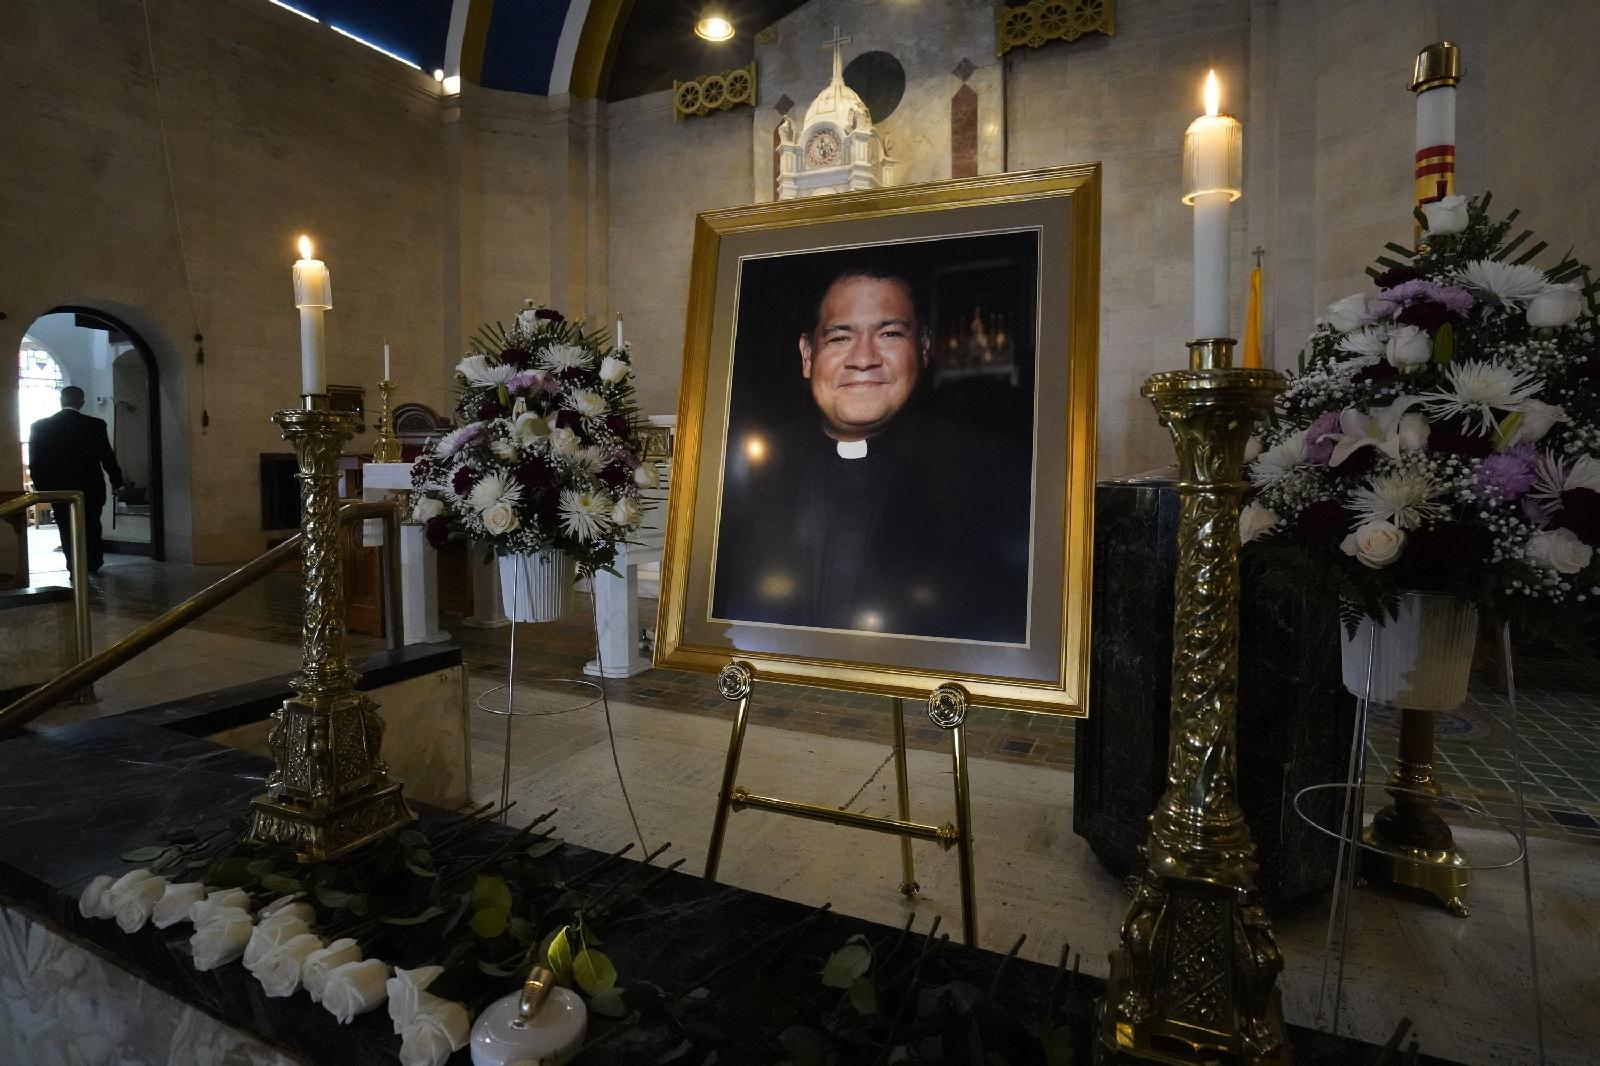 Portrait of the late Father Jorge Ortiz-Garay in the sanctuary of St. Brigid Church, Brooklyn, N.Y., on March 27, 2021, marking the first anniversary of his death from COVID-19 – the first Catholic priest in the U.S. to succumb to the coronavirus. [Gregory A. Shemitz]